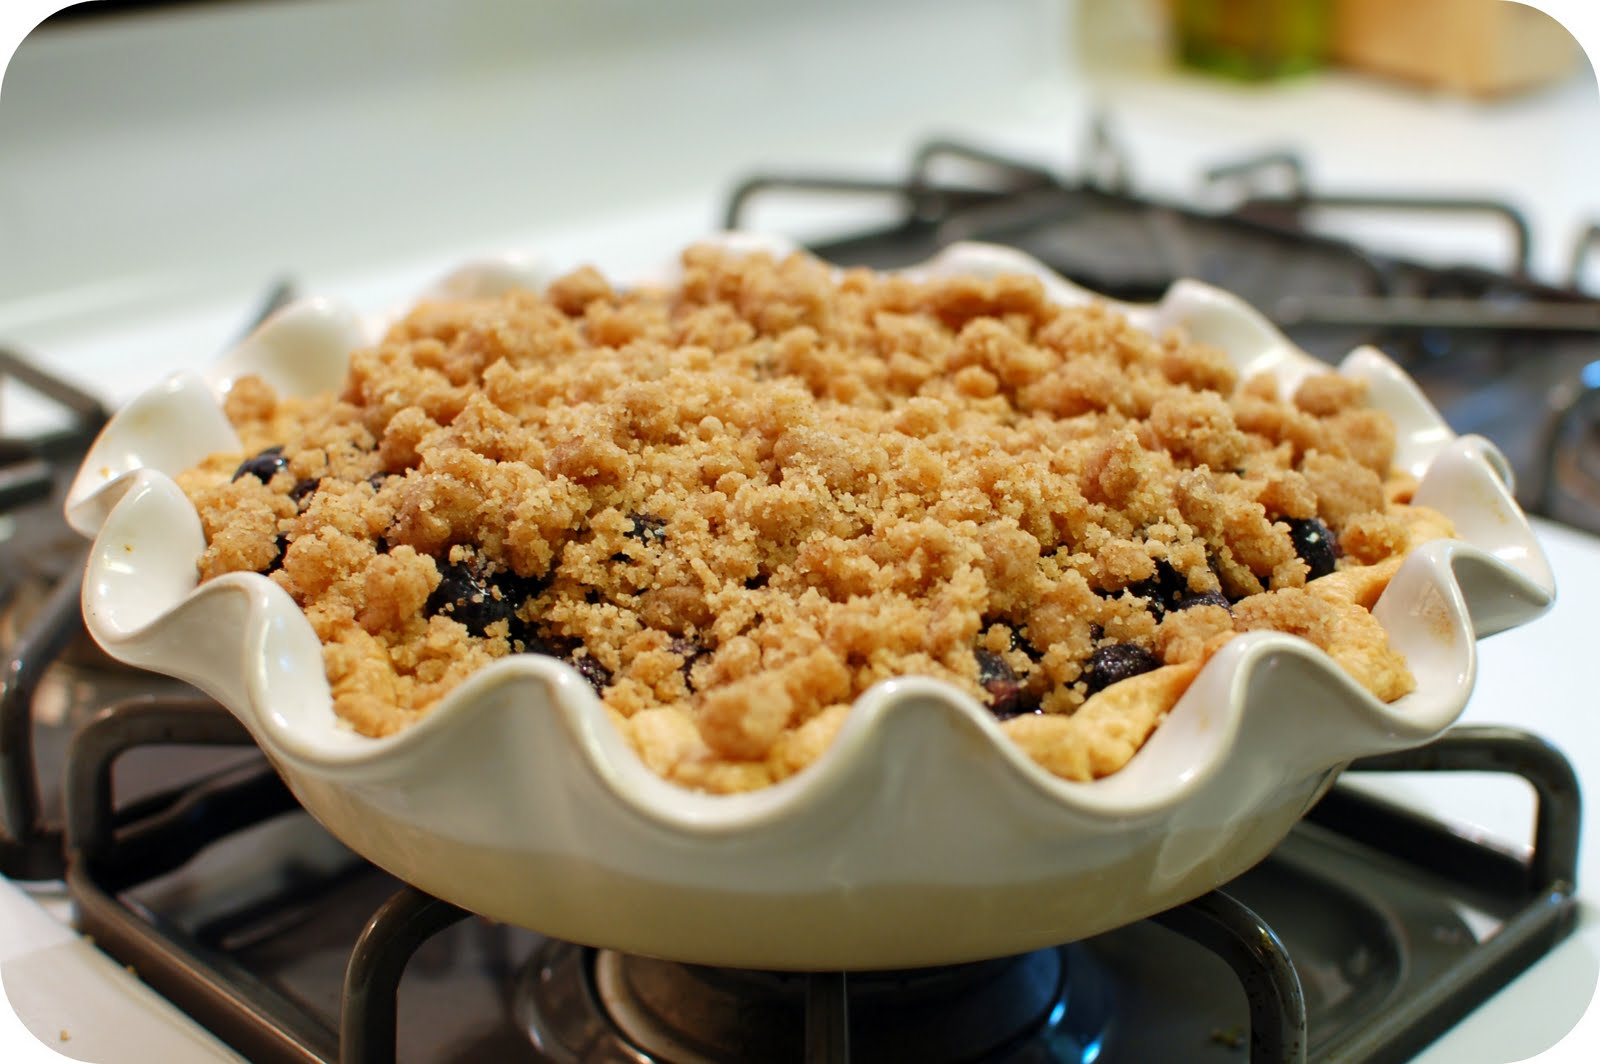 Blueberry Crumb Pie Blueberry crumble pie